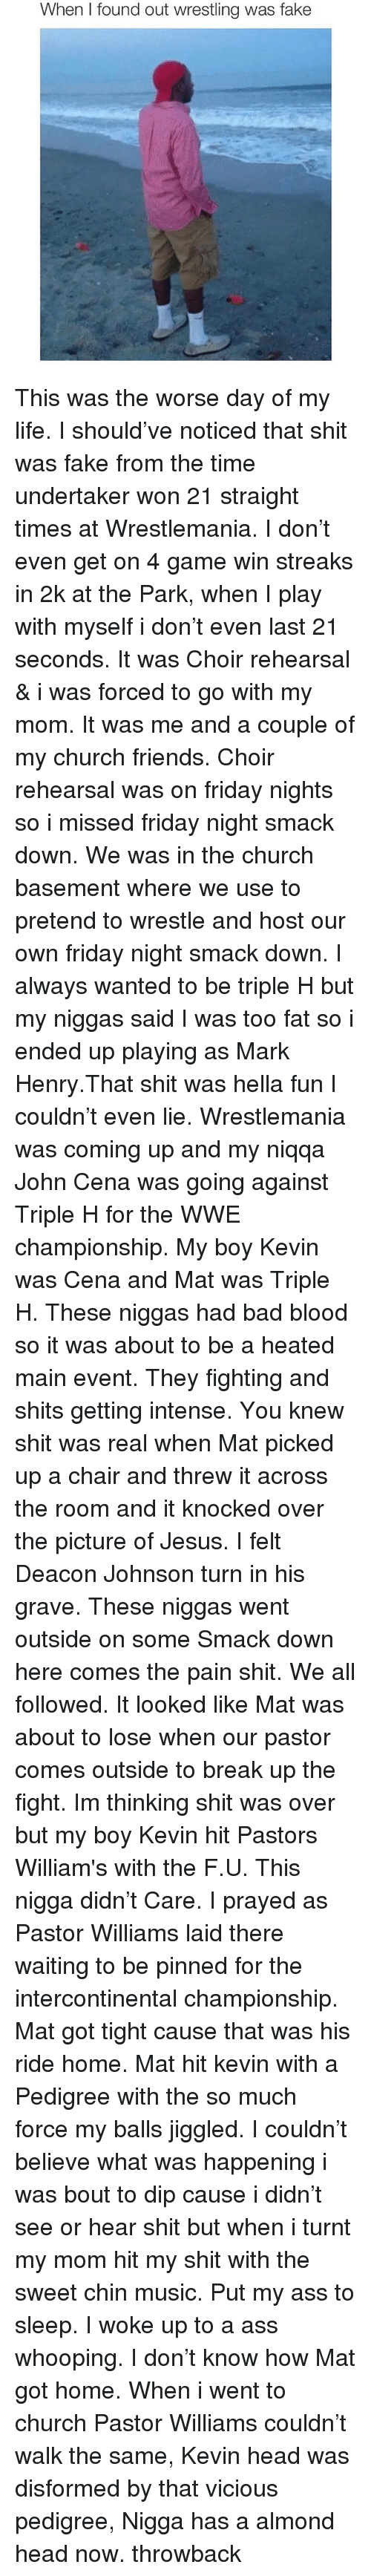 A Ass: When I found out wrestling was fake This was the worse day of my life. I should've noticed that shit was fake from the time undertaker won 21 straight times at Wrestlemania. I don't even get on 4 game win streaks in 2k at the Park, when I play with myself i don't even last 21 seconds. It was Choir rehearsal & i was forced to go with my mom. It was me and a couple of my church friends. Choir rehearsal was on friday nights so i missed friday night smack down. We was in the church basement where we use to pretend to wrestle and host our own friday night smack down. I always wanted to be triple H but my niggas said I was too fat so i ended up playing as Mark Henry.That shit was hella fun I couldn't even lie. Wrestlemania was coming up and my niqqa John Cena was going against Triple H for the WWE championship. My boy Kevin was Cena and Mat was Triple H. These niggas had bad blood so it was about to be a heated main event. They fighting and shits getting intense. You knew shit was real when Mat picked up a chair and threw it across the room and it knocked over the picture of Jesus. I felt Deacon Johnson turn in his grave. These niggas went outside on some Smack down here comes the pain shit. We all followed. It looked like Mat was about to lose when our pastor comes outside to break up the fight. Im thinking shit was over but my boy Kevin hit Pastors William's with the F.U. This nigga didn't Care. I prayed as Pastor Williams laid there waiting to be pinned for the intercontinental championship. Mat got tight cause that was his ride home. Mat hit kevin with a Pedigree with the so much force my balls jiggled. I couldn't believe what was happening i was bout to dip cause i didn't see or hear shit but when i turnt my mom hit my shit with the sweet chin music. Put my ass to sleep. I woke up to a ass whooping. I don't know how Mat got home. When i went to church Pastor Williams couldn't walk the same, Kevin head was disformed by that vicious pedigree, Nigga has a almond 